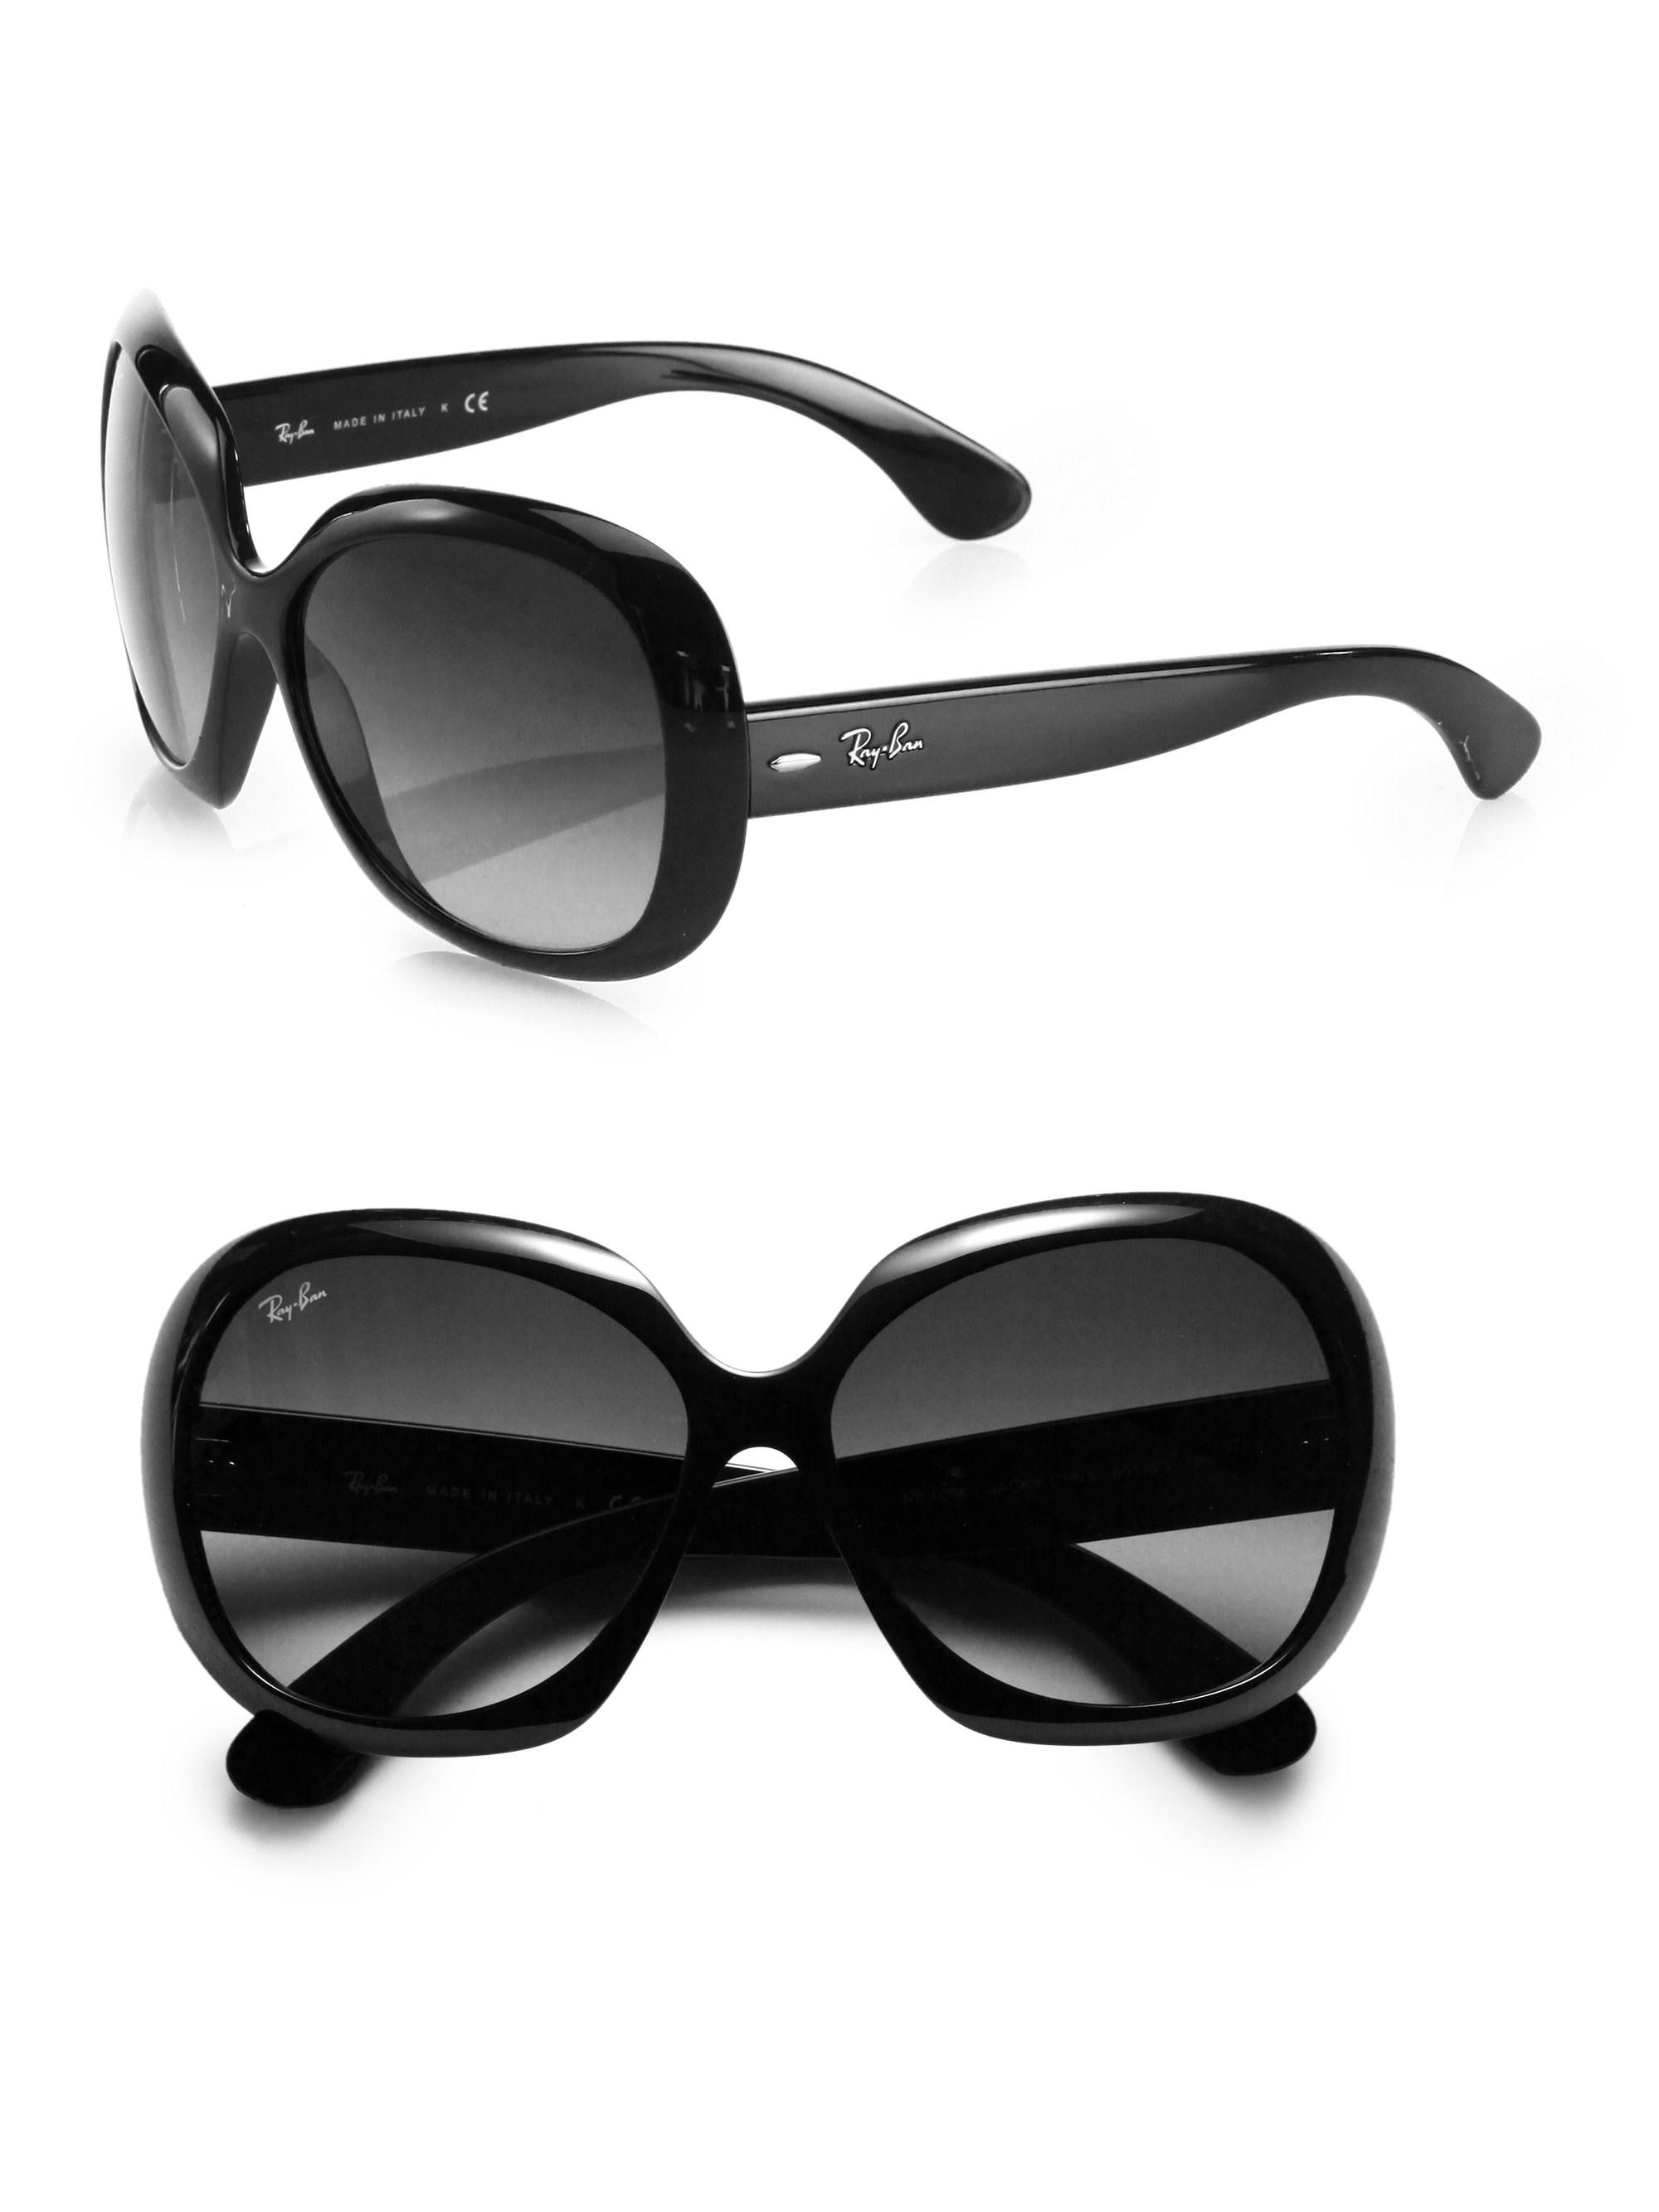 eac1973cf9 Lyst - Ray-Ban Women s Vintage Oversized Round Jackie Ohh Sunglasses ...